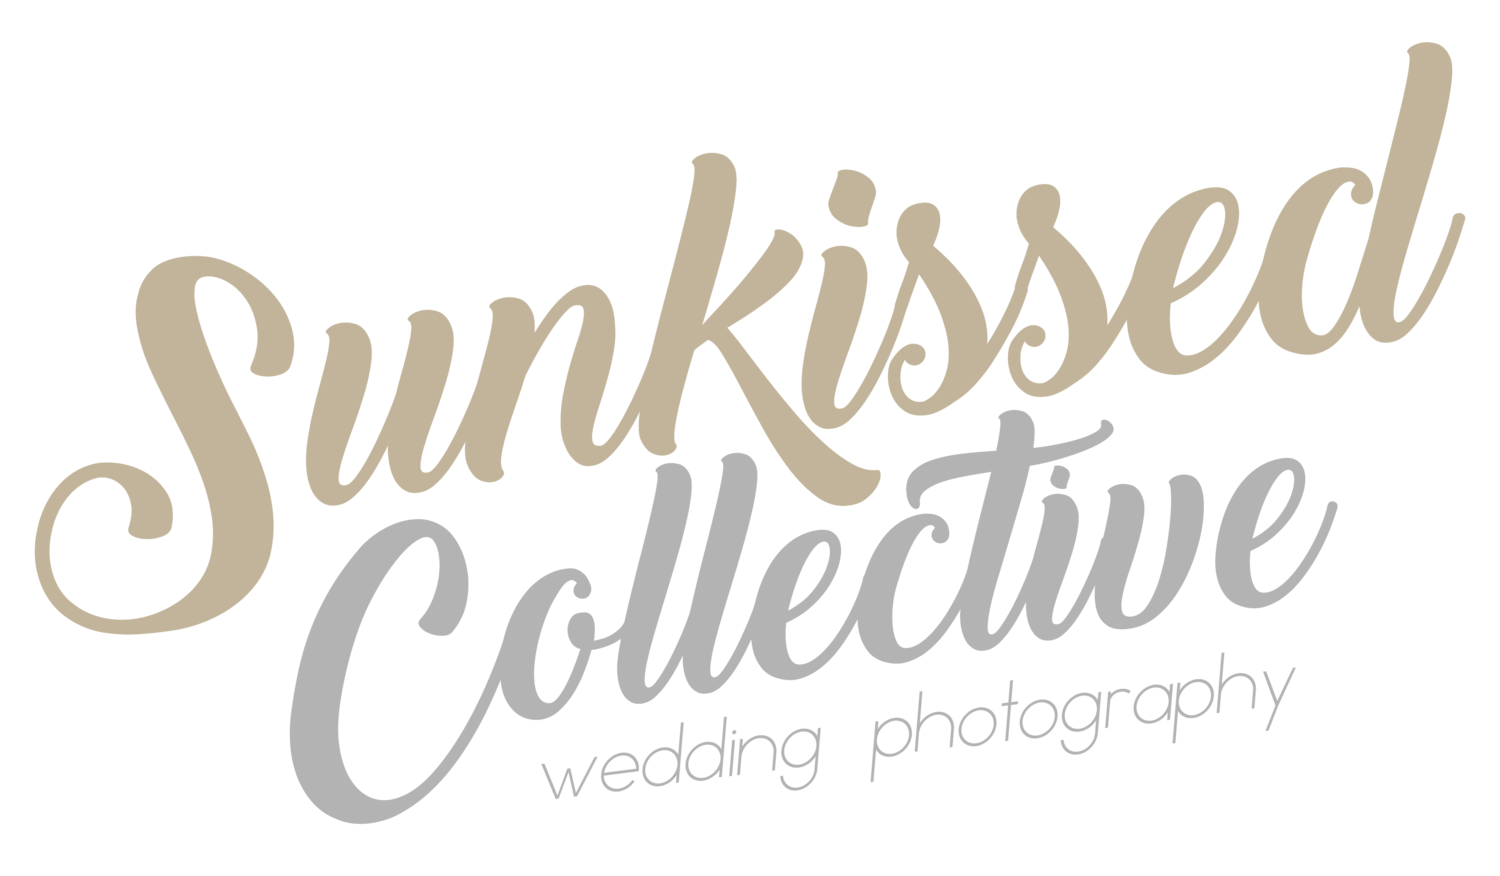 Sunkissed Collective